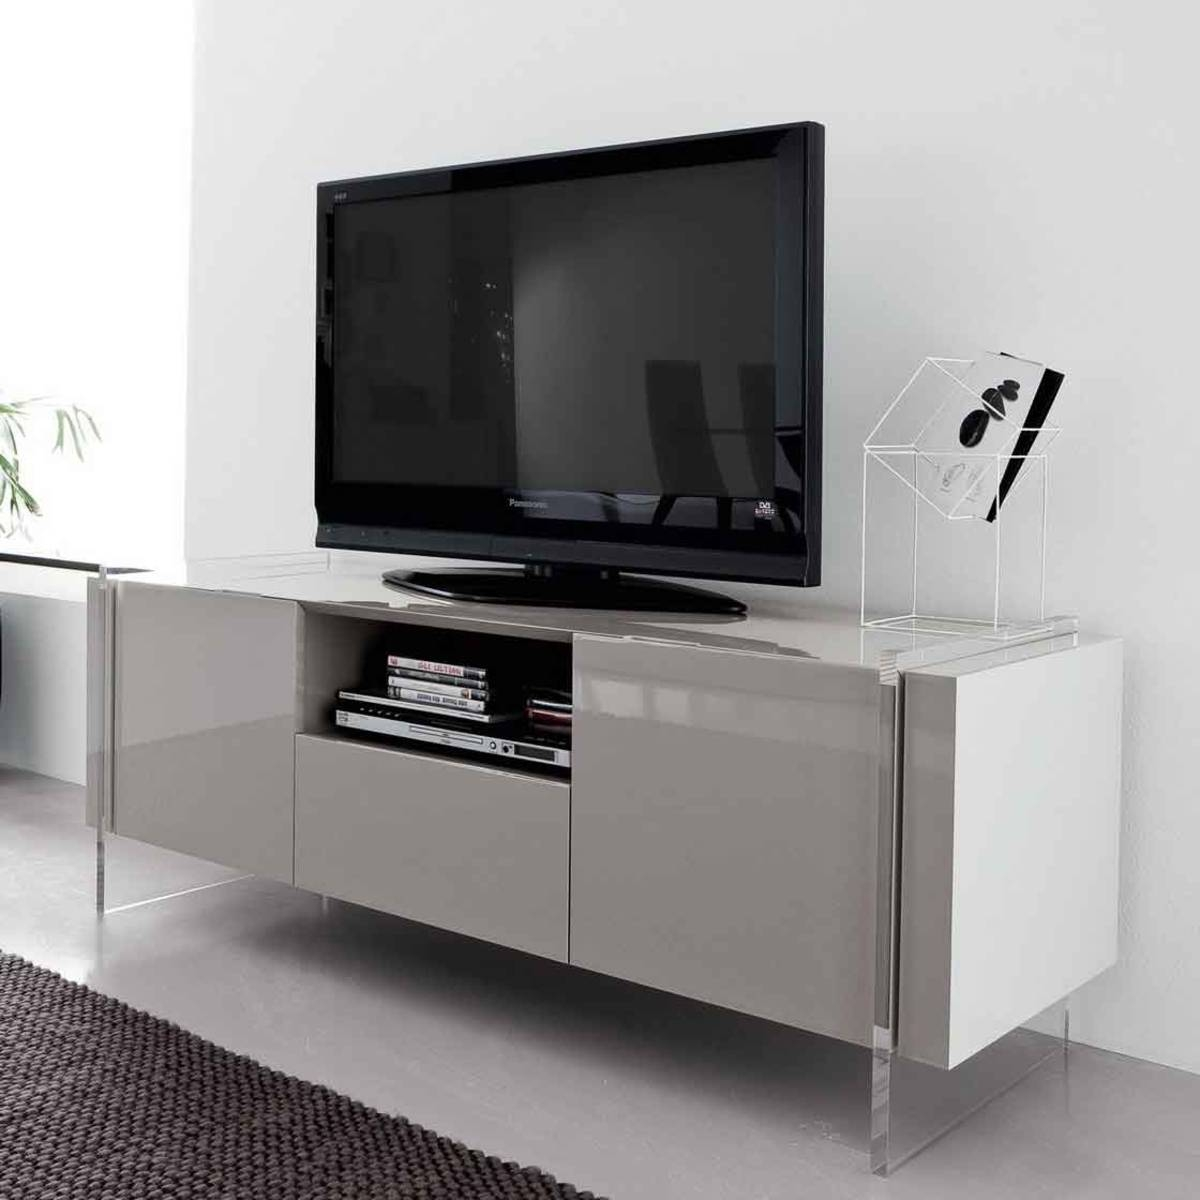 Unique Tv Stand Ideas, Furniture Cool Tv Stand Designs For A in Cool Tv Stands (Image 15 of 15)